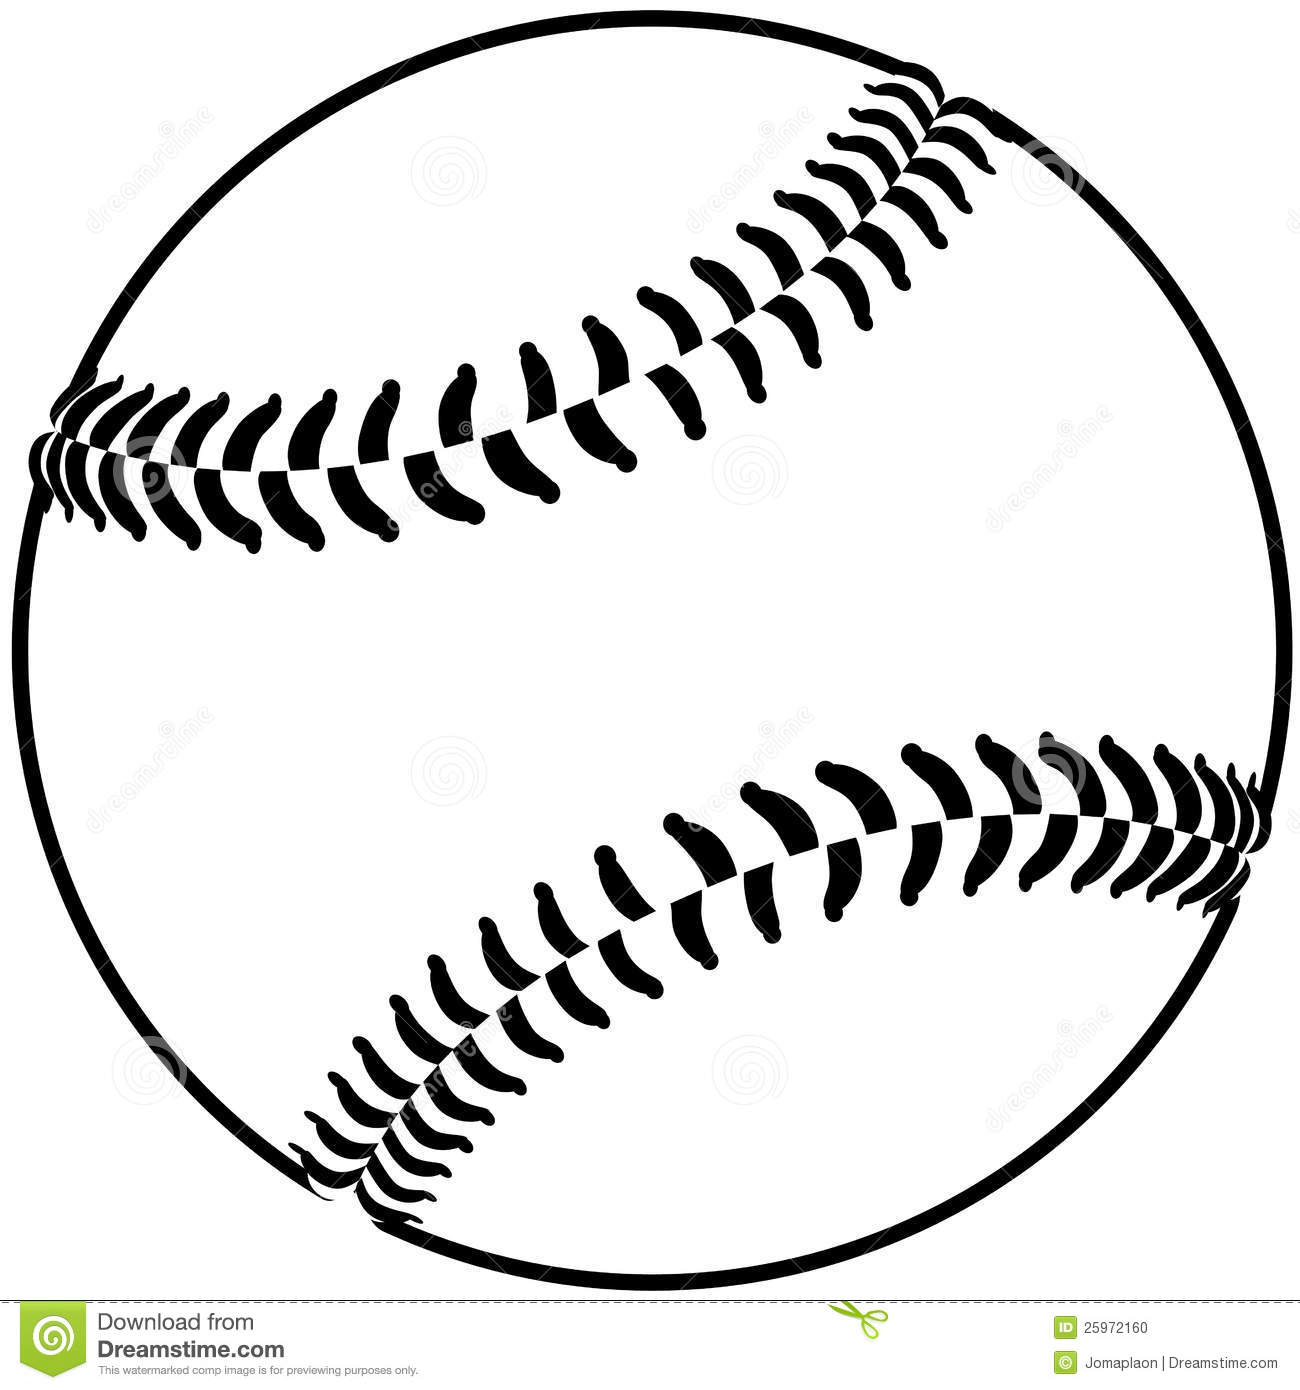 Baseball Outline Stock Photo - Image: 25972160